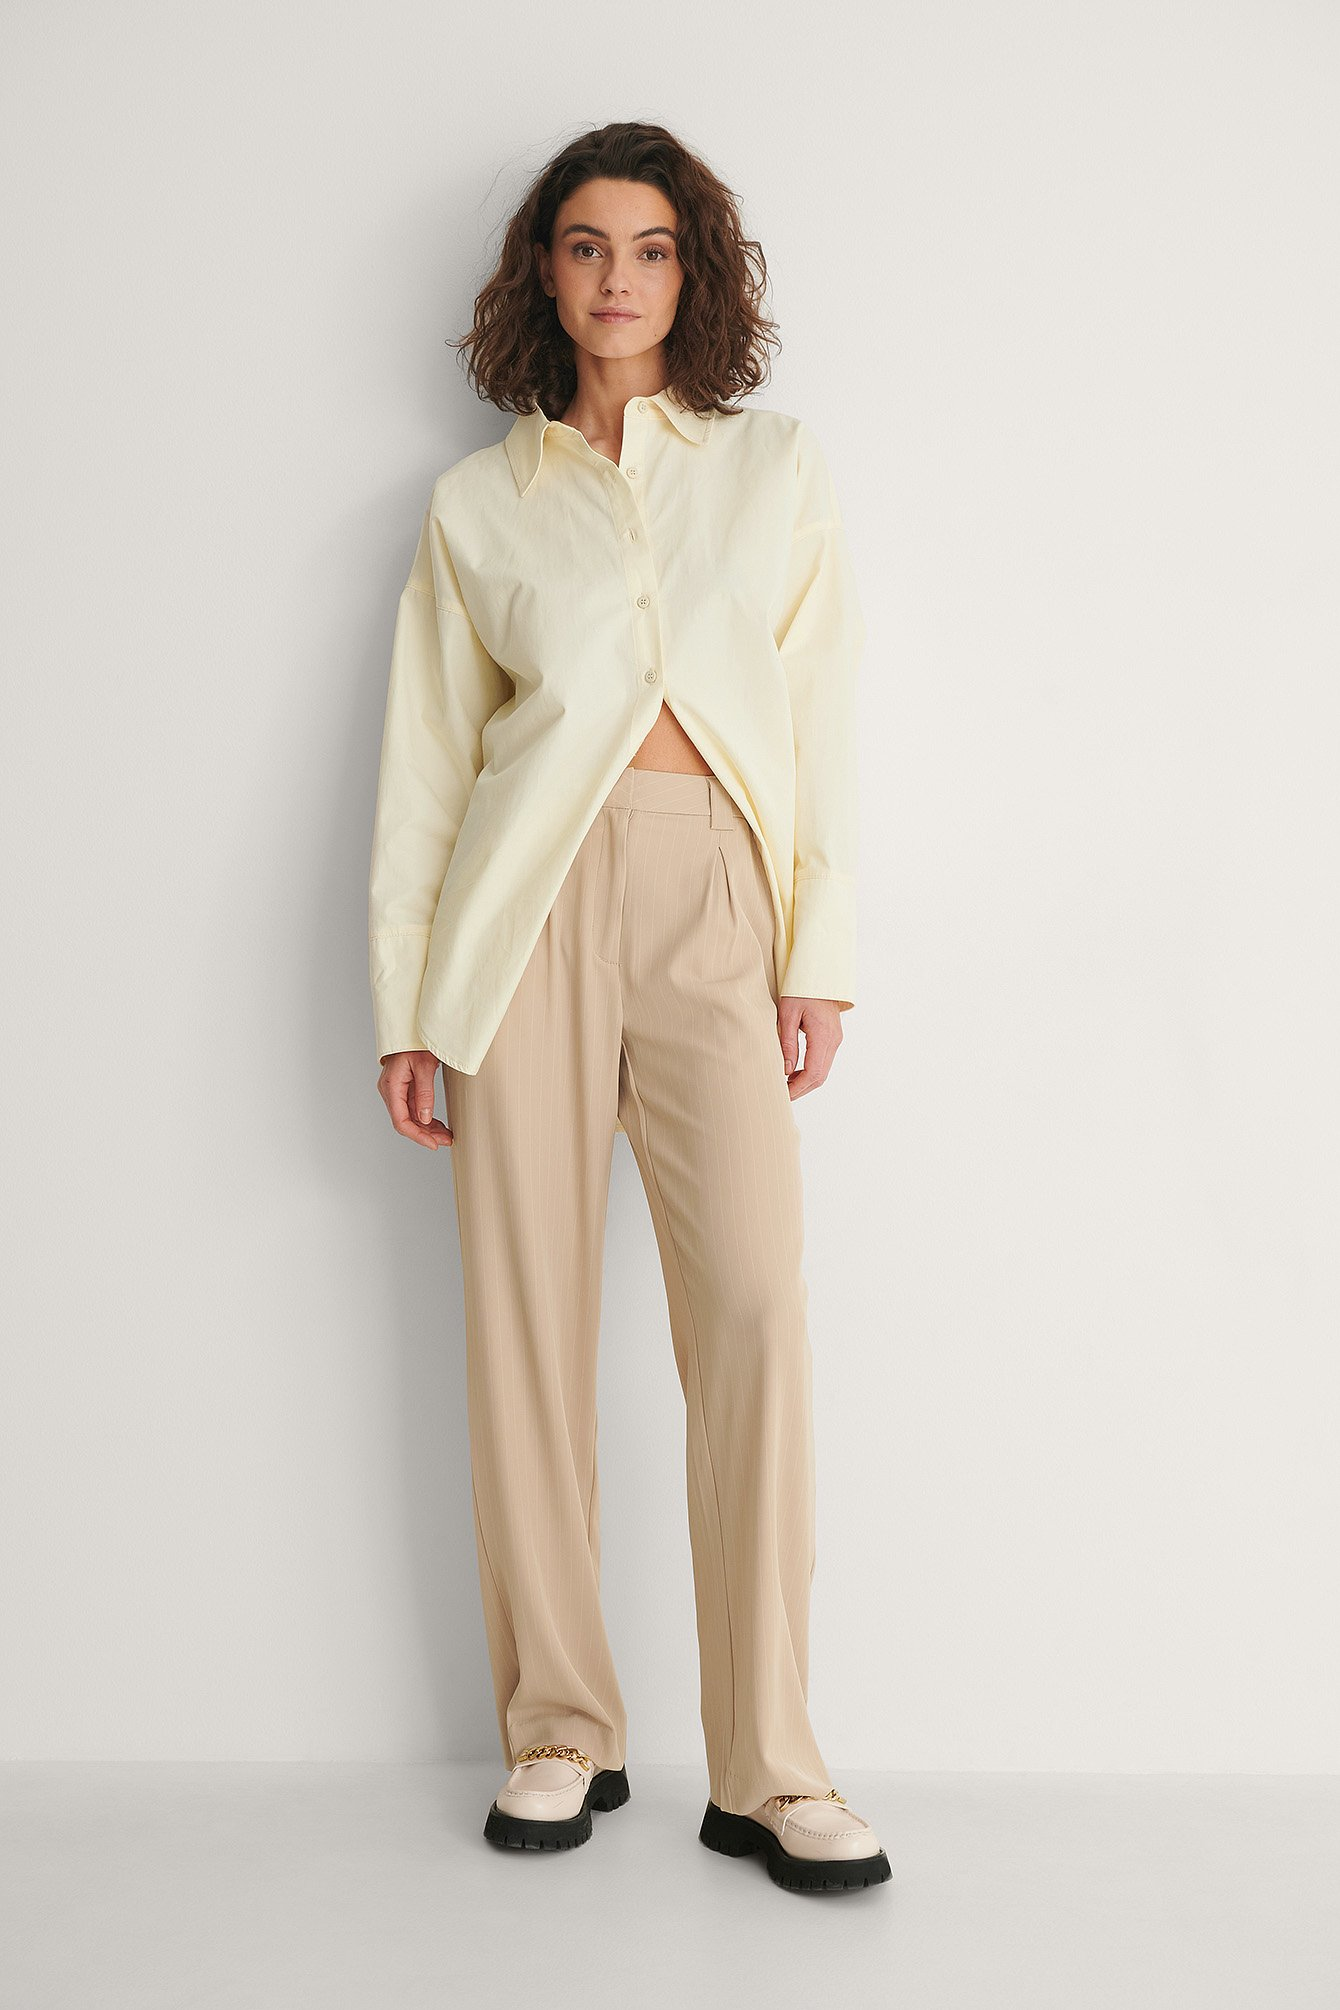 Beige Stripe Recycled Wide Leg Pinstriped Pants